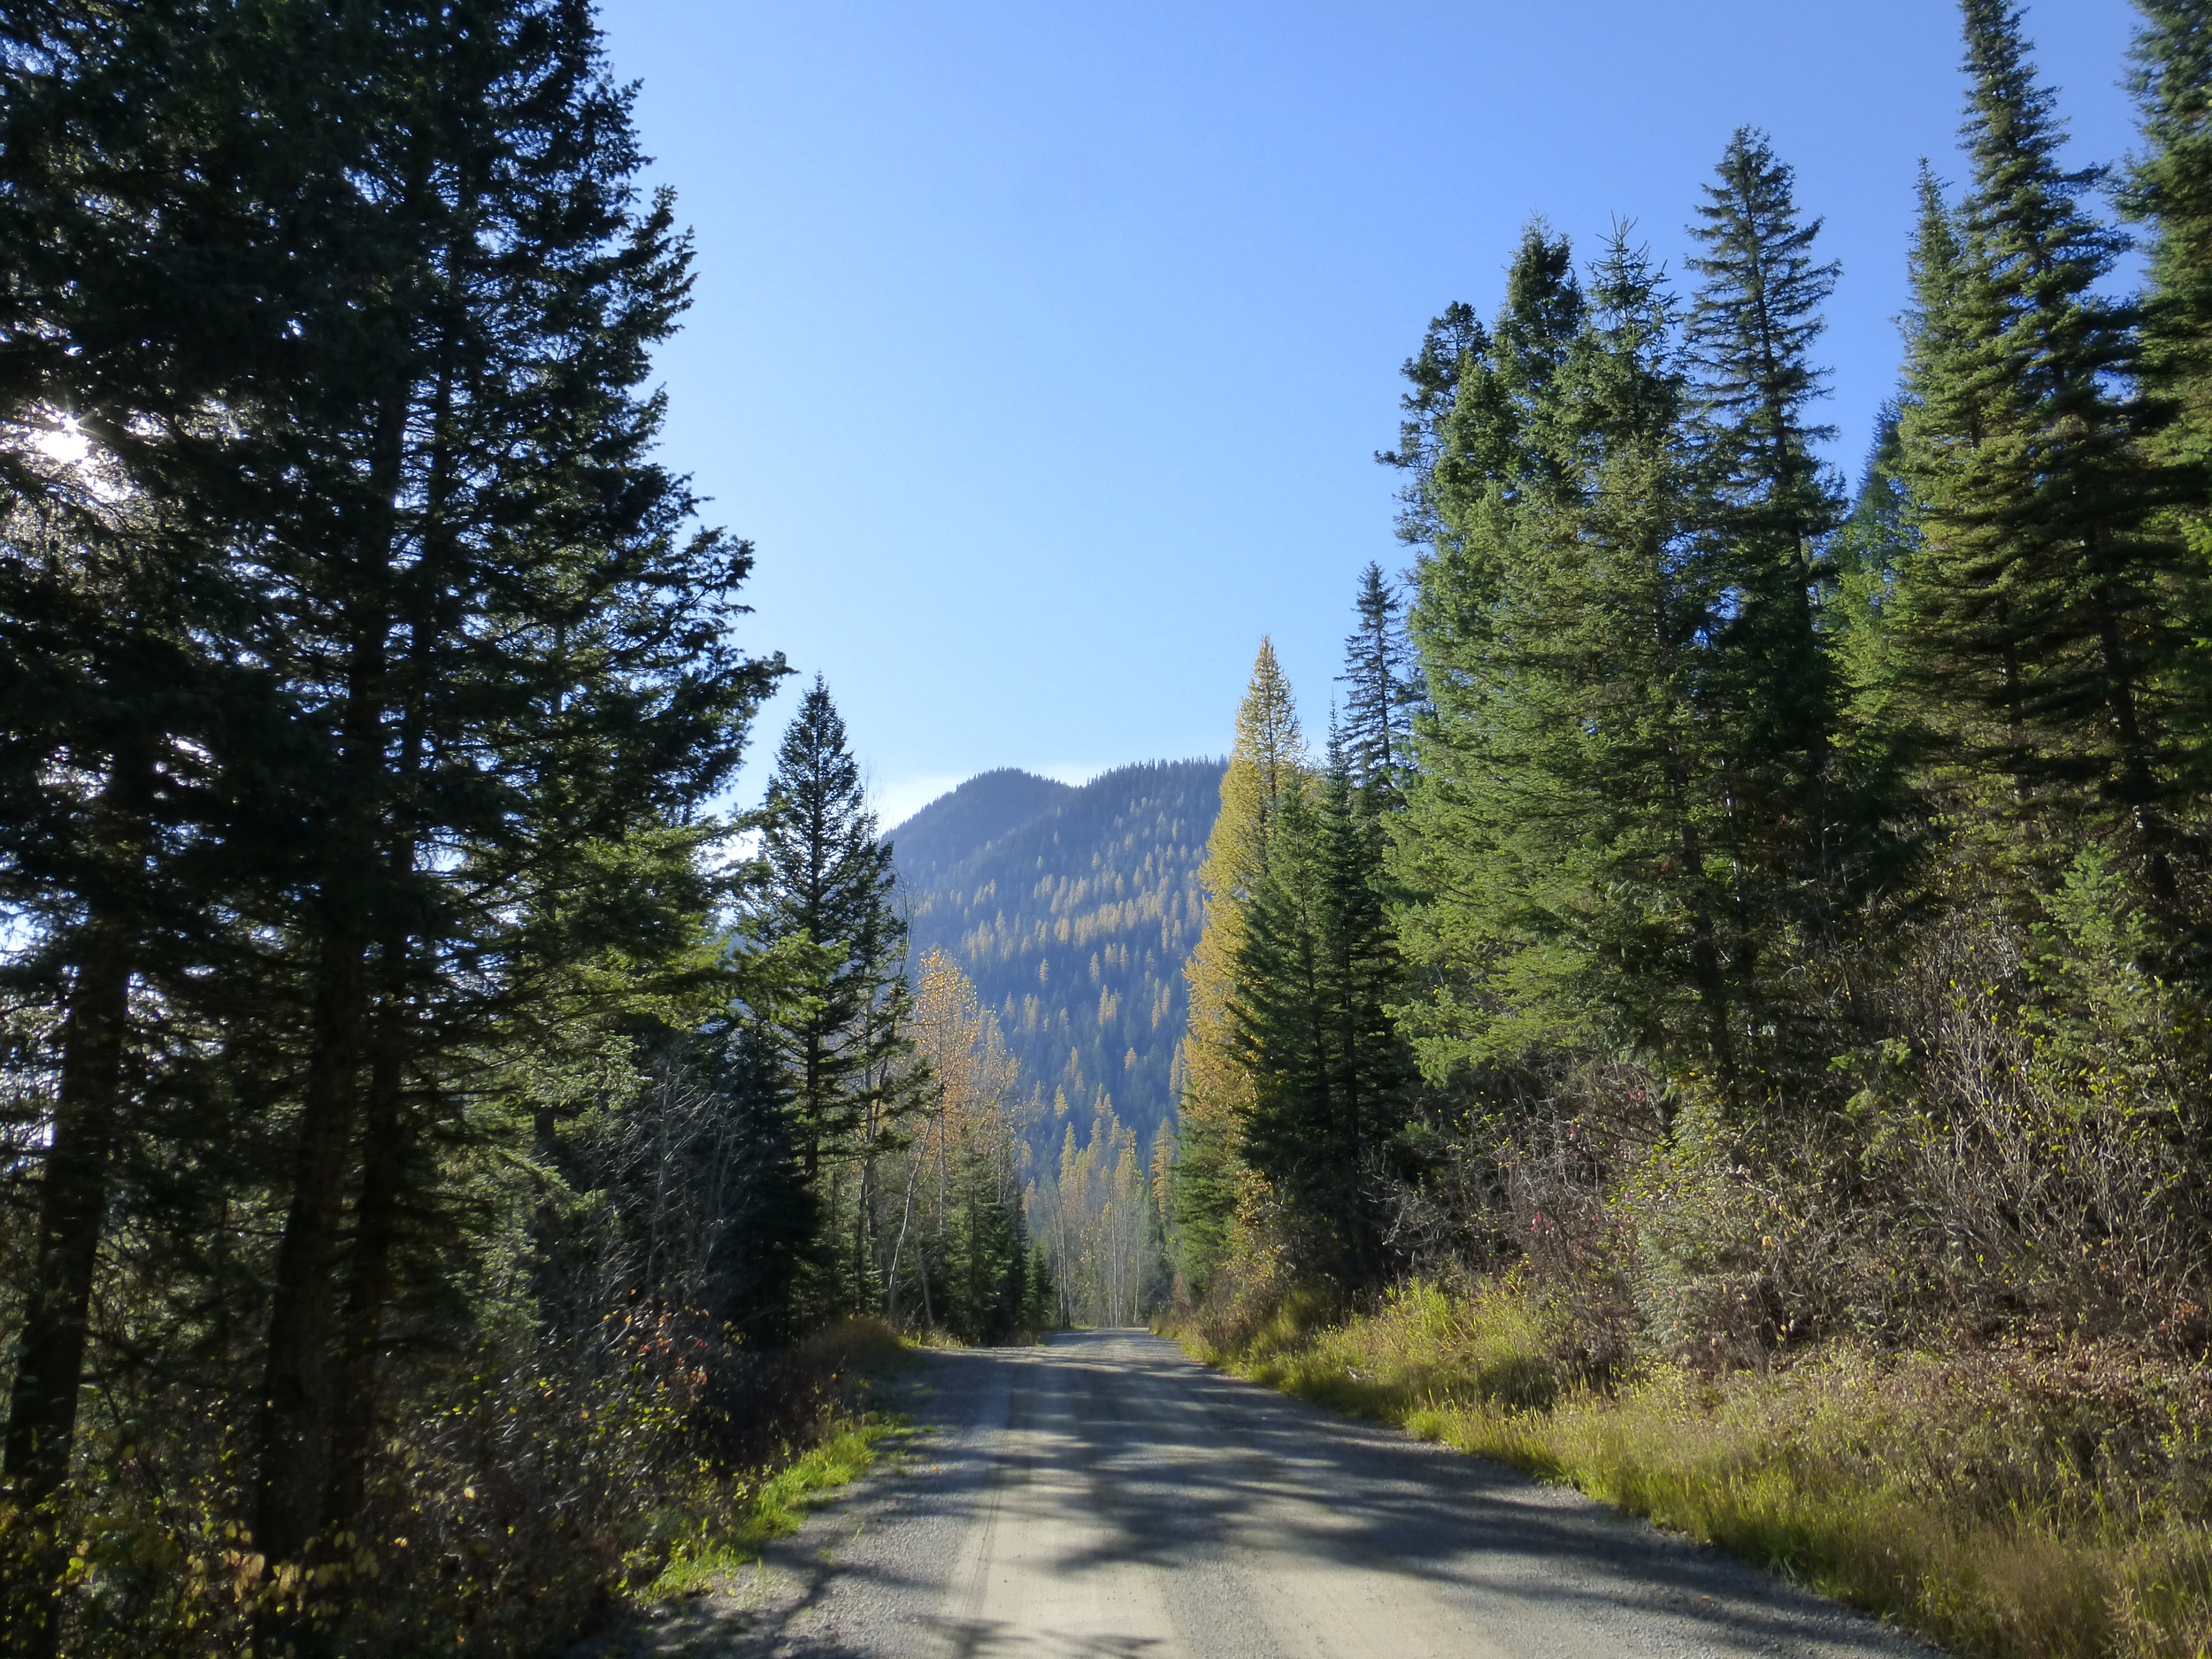 The road took me through some amazing scenery, my favorites: the Douglas Fir trees which shed their needles for the winter.